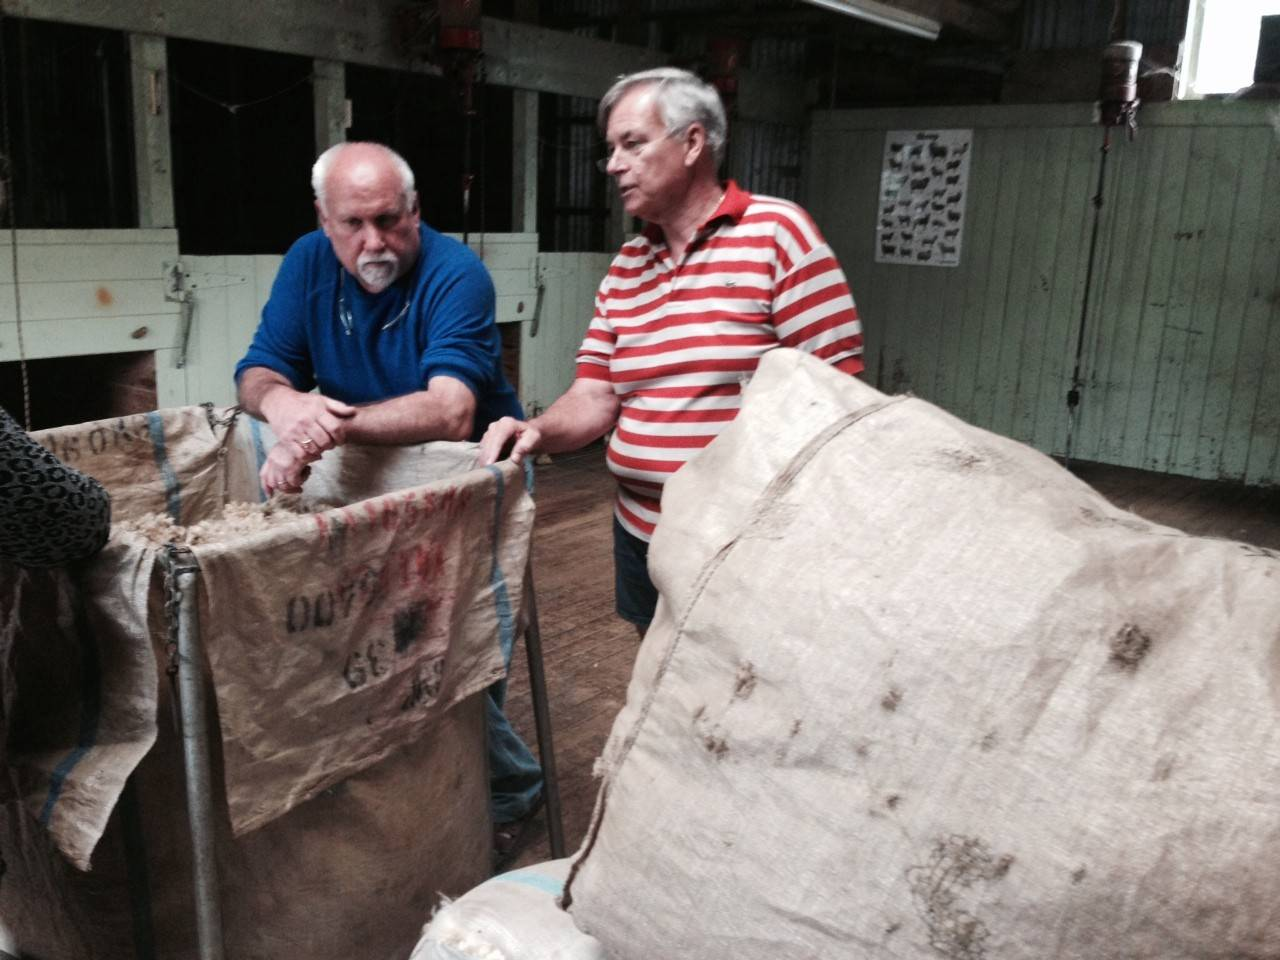 Dave Martin, at left, owner of Naperville-based Russell Martin Carpet & Rugs, talks with Ross Townshend (in stripe shirt), CEO of Wools of NewZealand, at his farm in New Zealand.